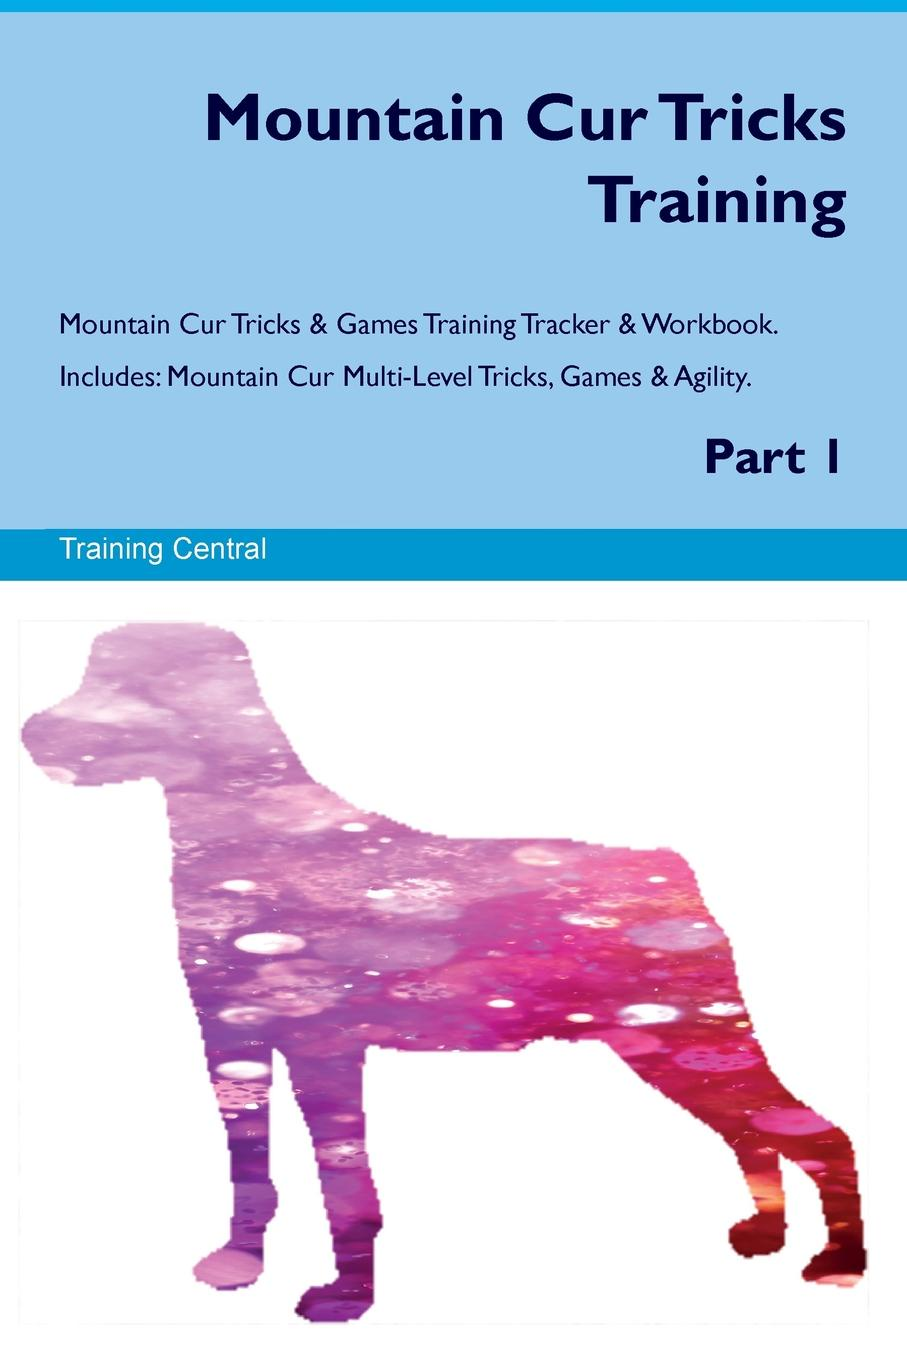 Training Central Mountain Cur Tricks Training Mountain Cur Tricks & Games Training Tracker & Workbook. Includes. Mountain Cur Multi-Level Tricks, Games & Agility. Part 1 training central mountain feist tricks training mountain feist tricks